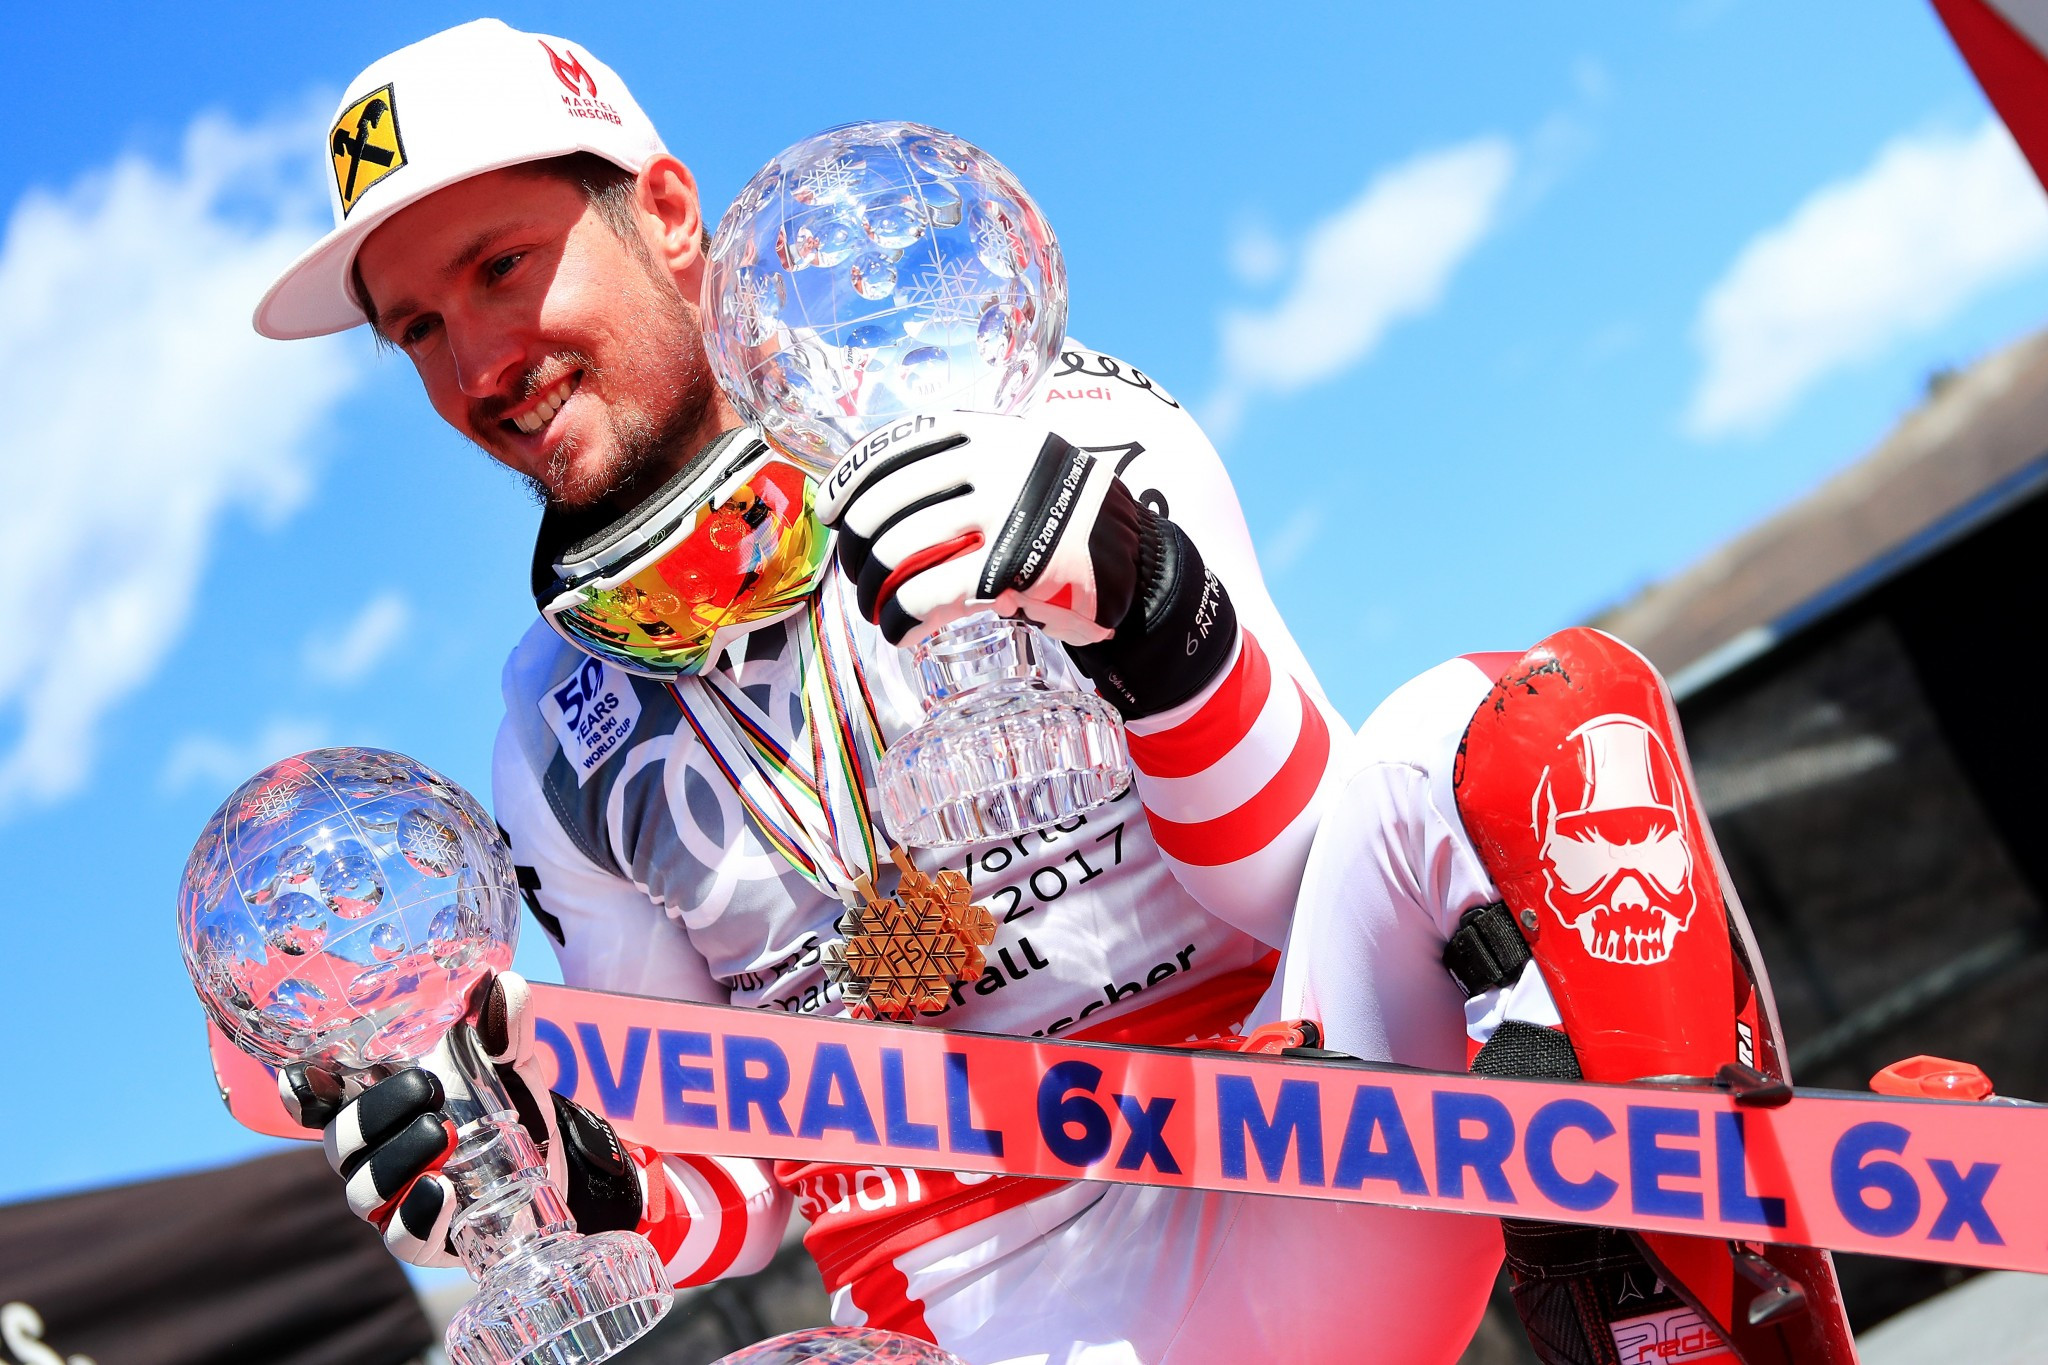 Alpine Skiing World Cup champion Hirscher set to miss start of season through injury